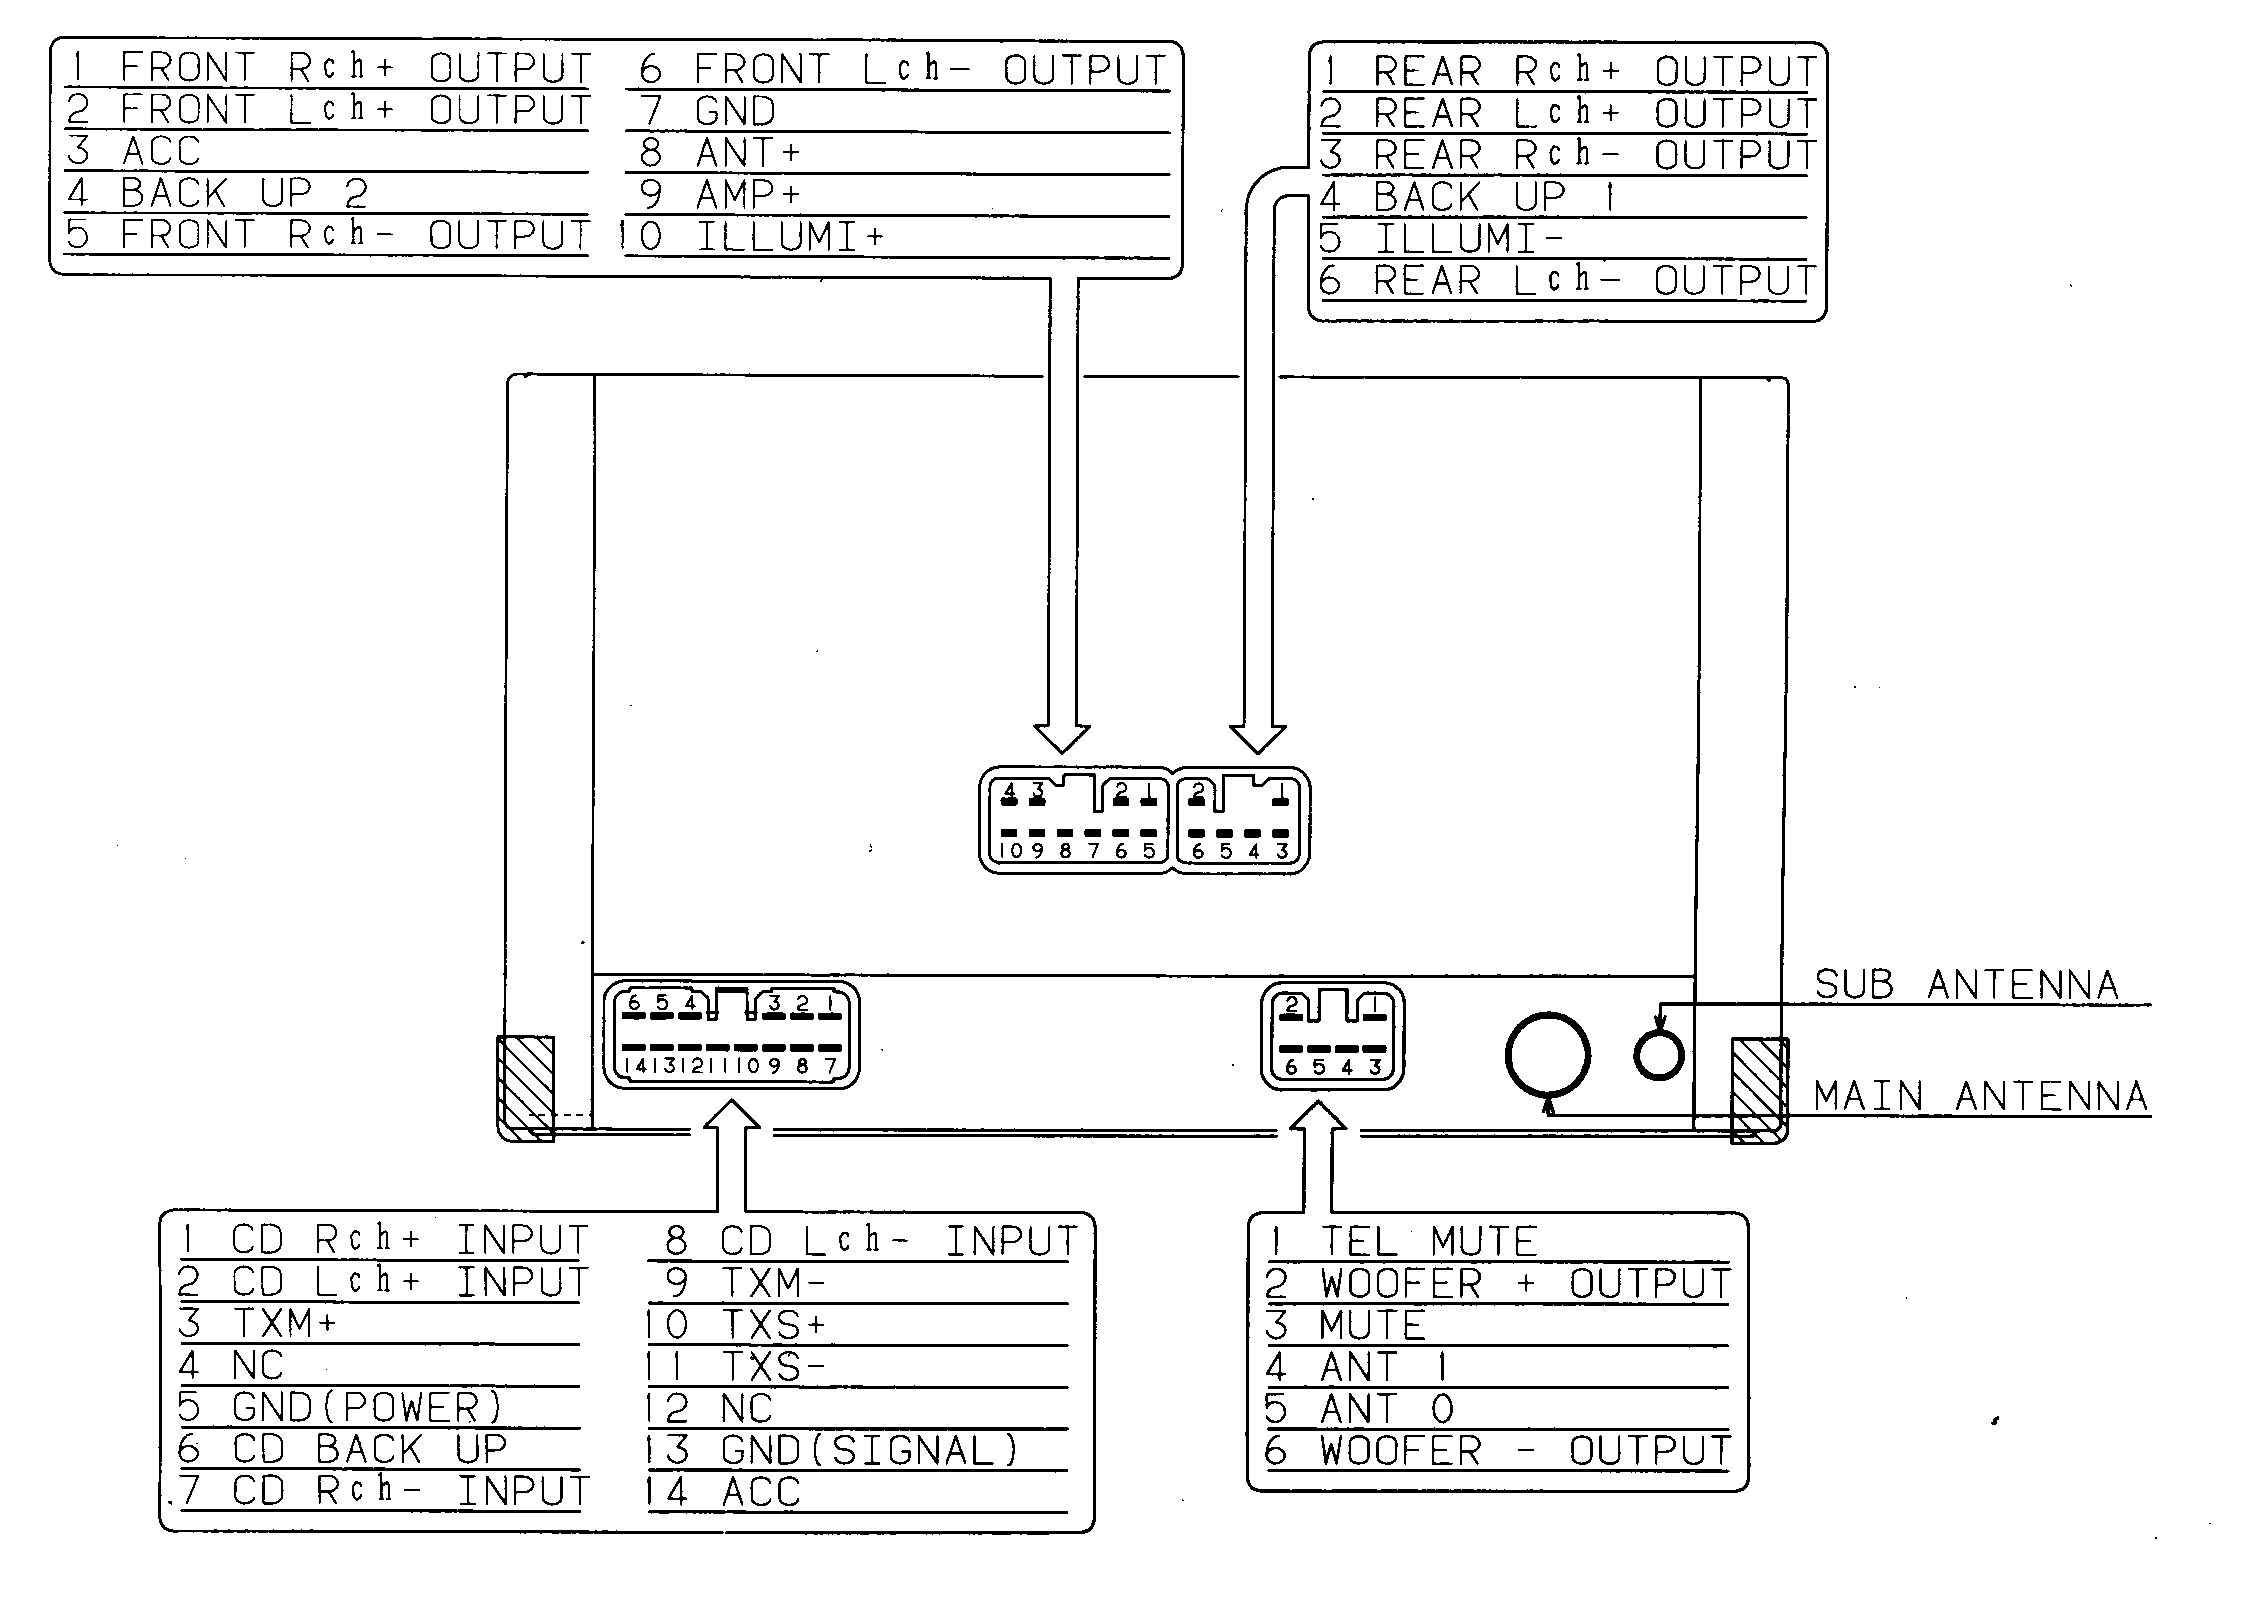 lexus wiring diagrams lexus wiring diagrams wireharnesslexus121001 lexus wiring diagrams wireharnesslexus121001